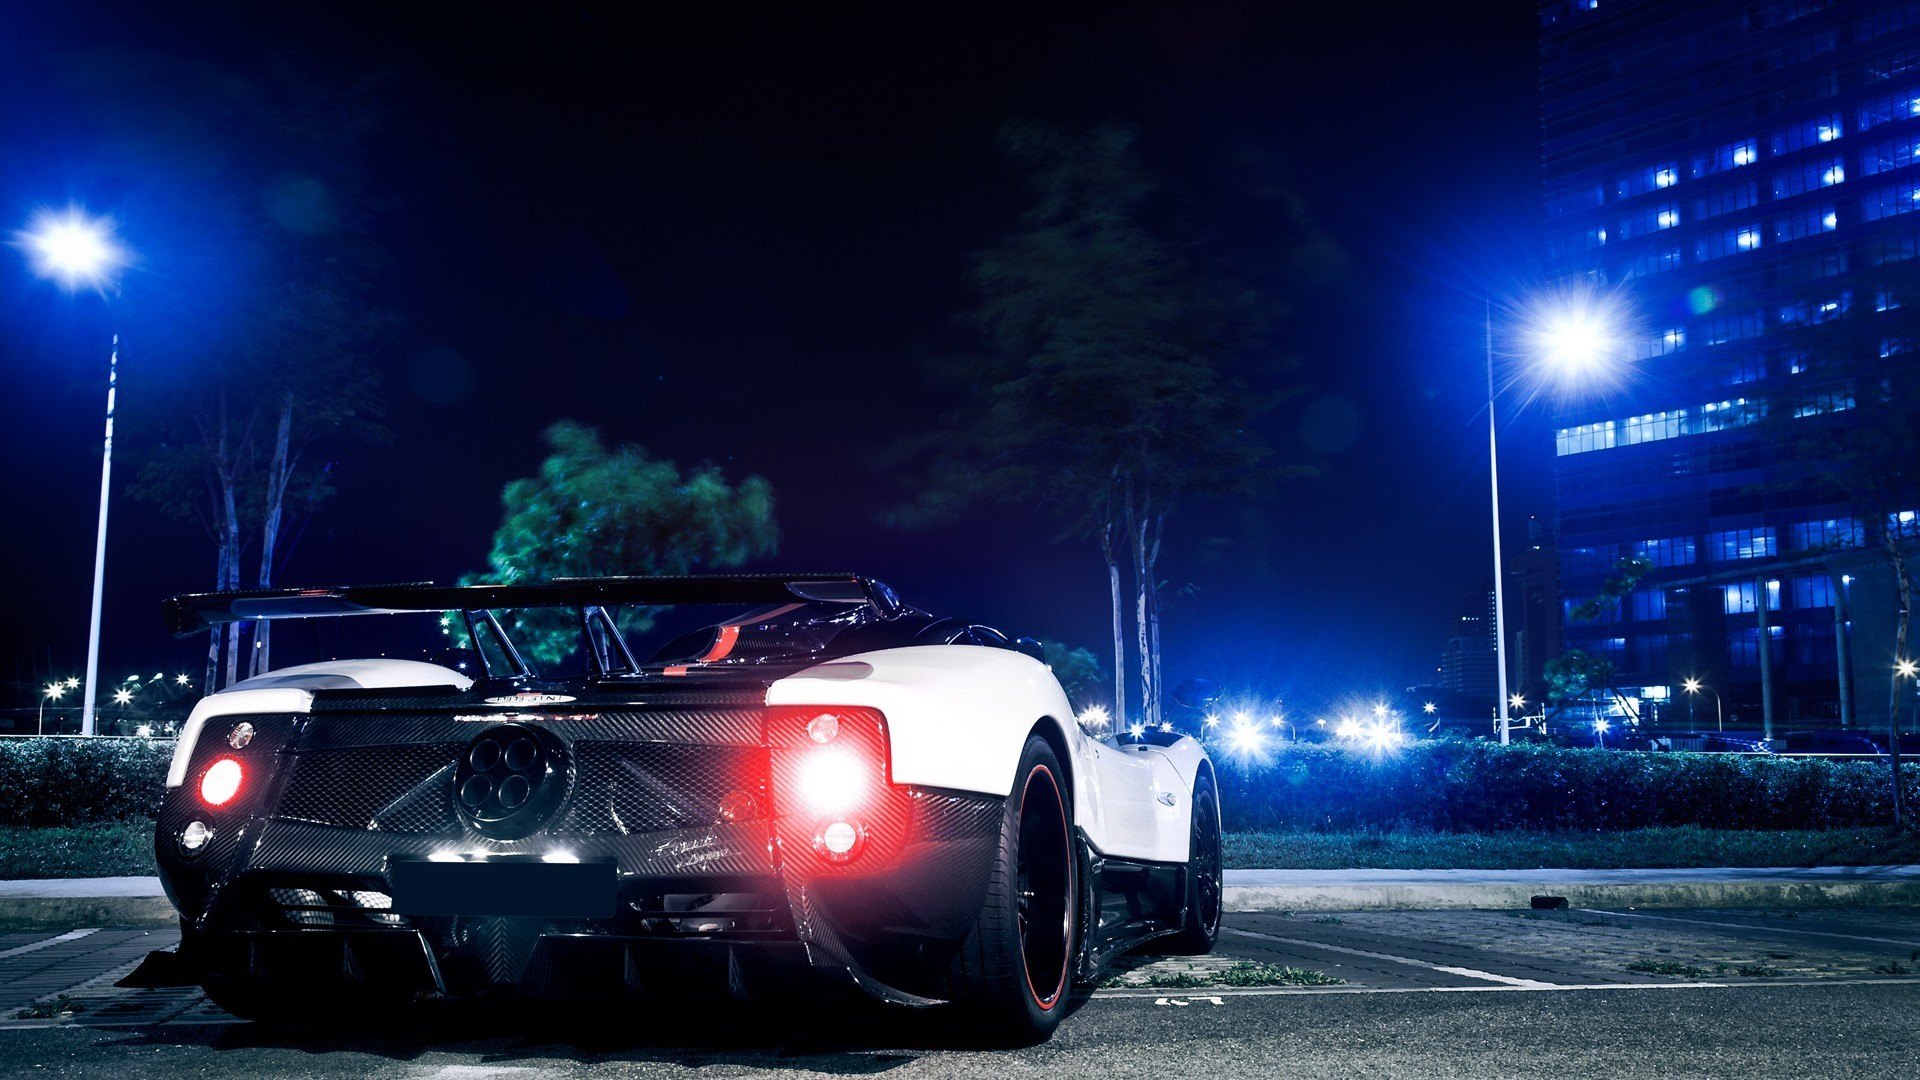 1920x1080 Pagani Zonda Cinque HD Desktop Wallpaper